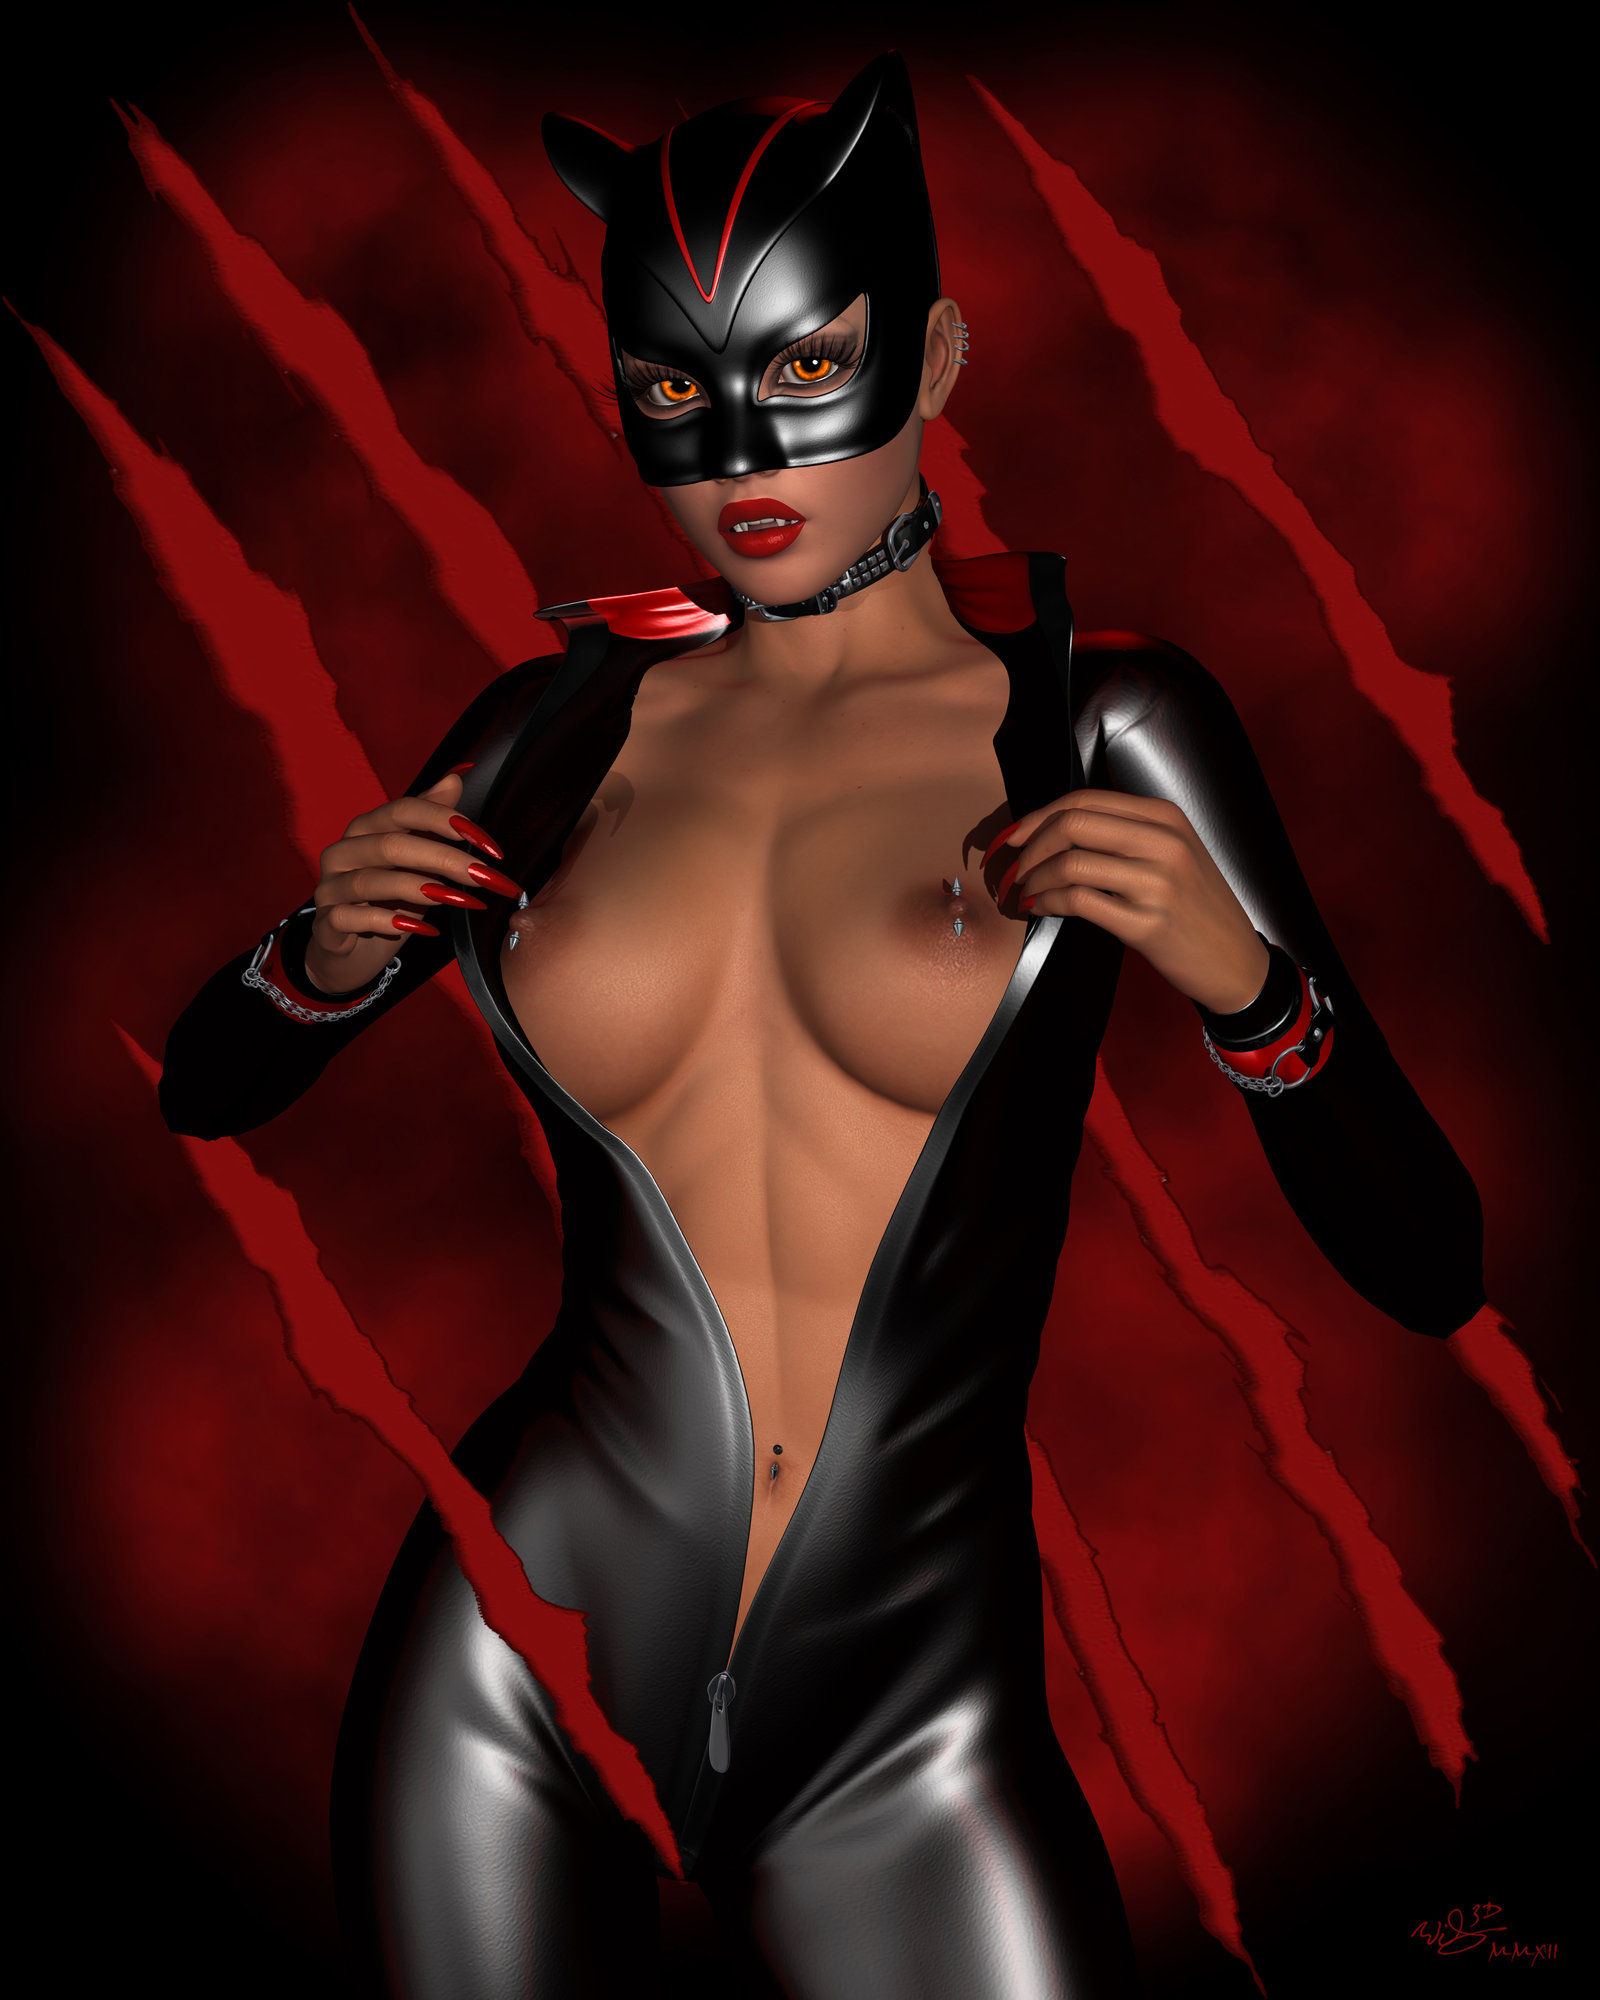 Nude catwoman hot hentai pictures